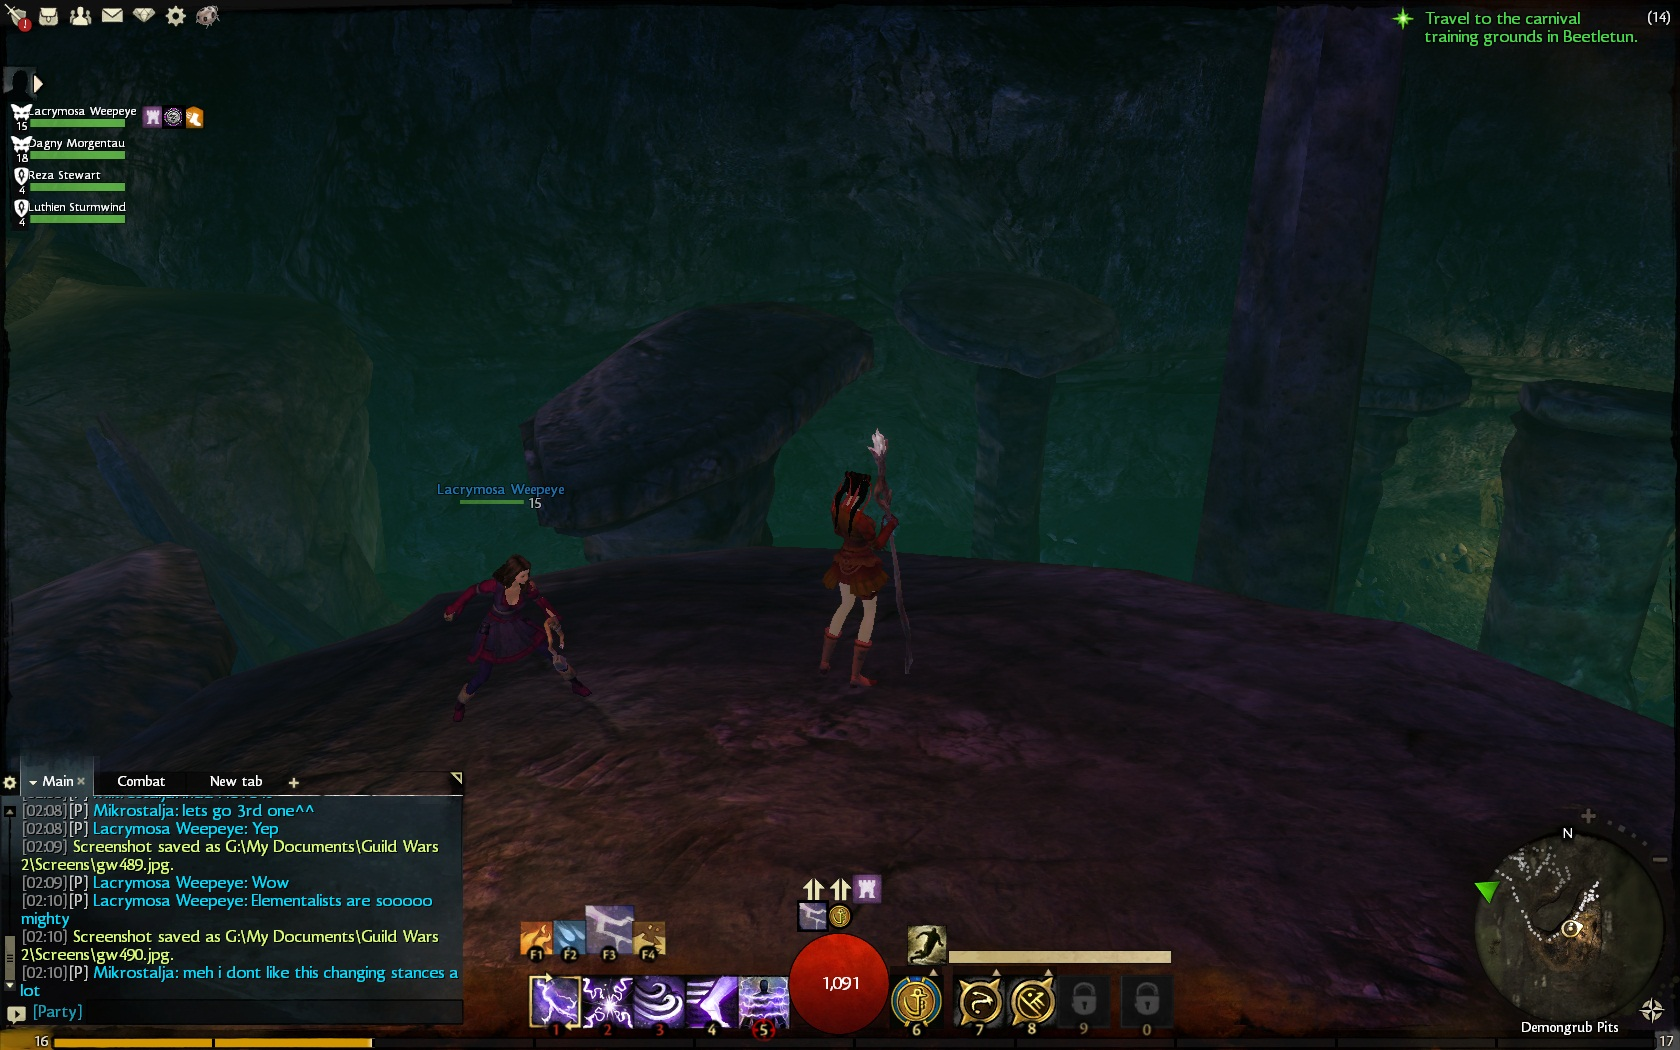 route to the second treasure chest